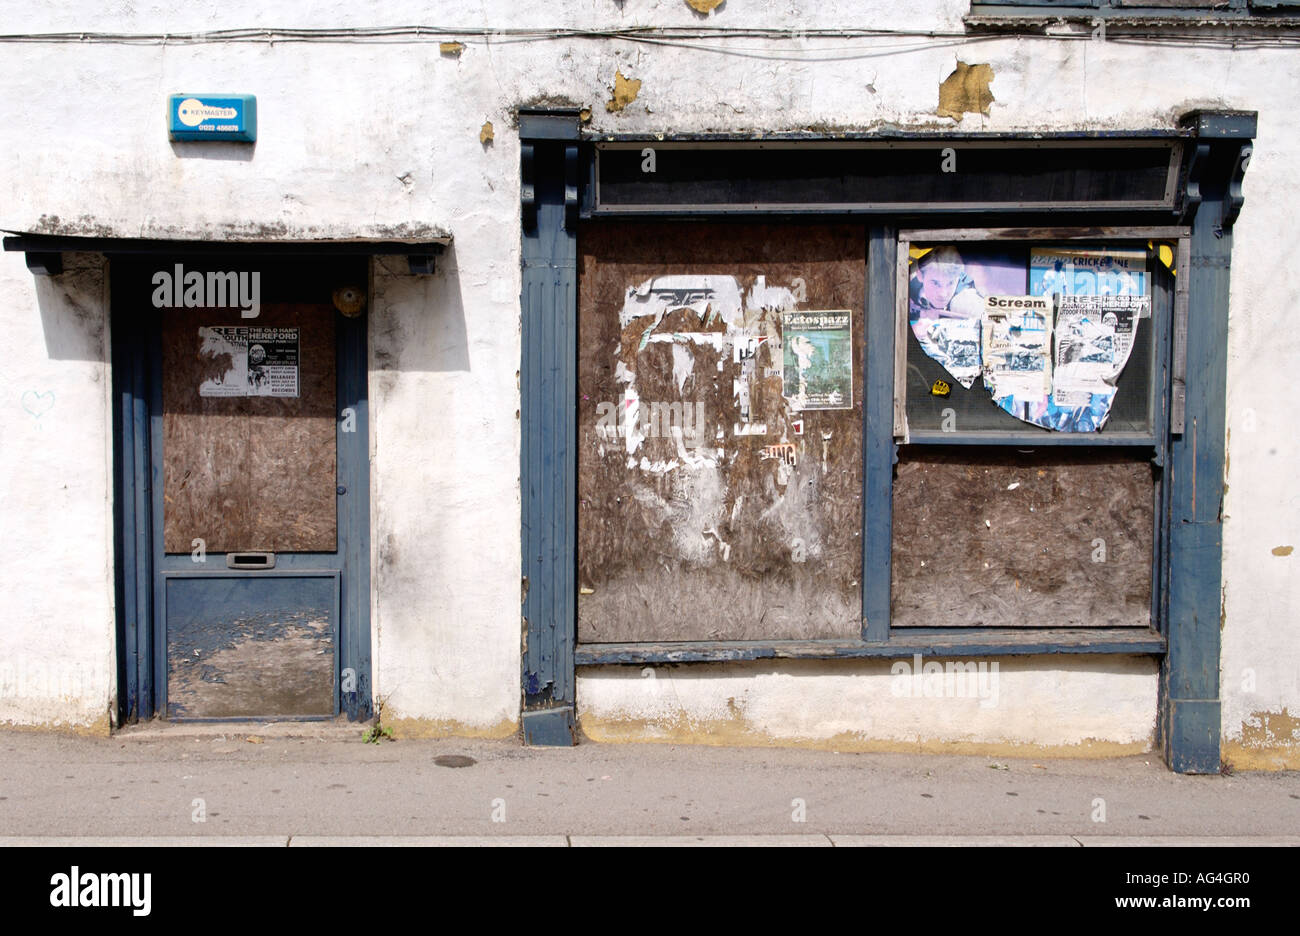 urban decay uk Derelict boarded up shop in Chepstow Monmouthshire South East Wales UK - Stock Image